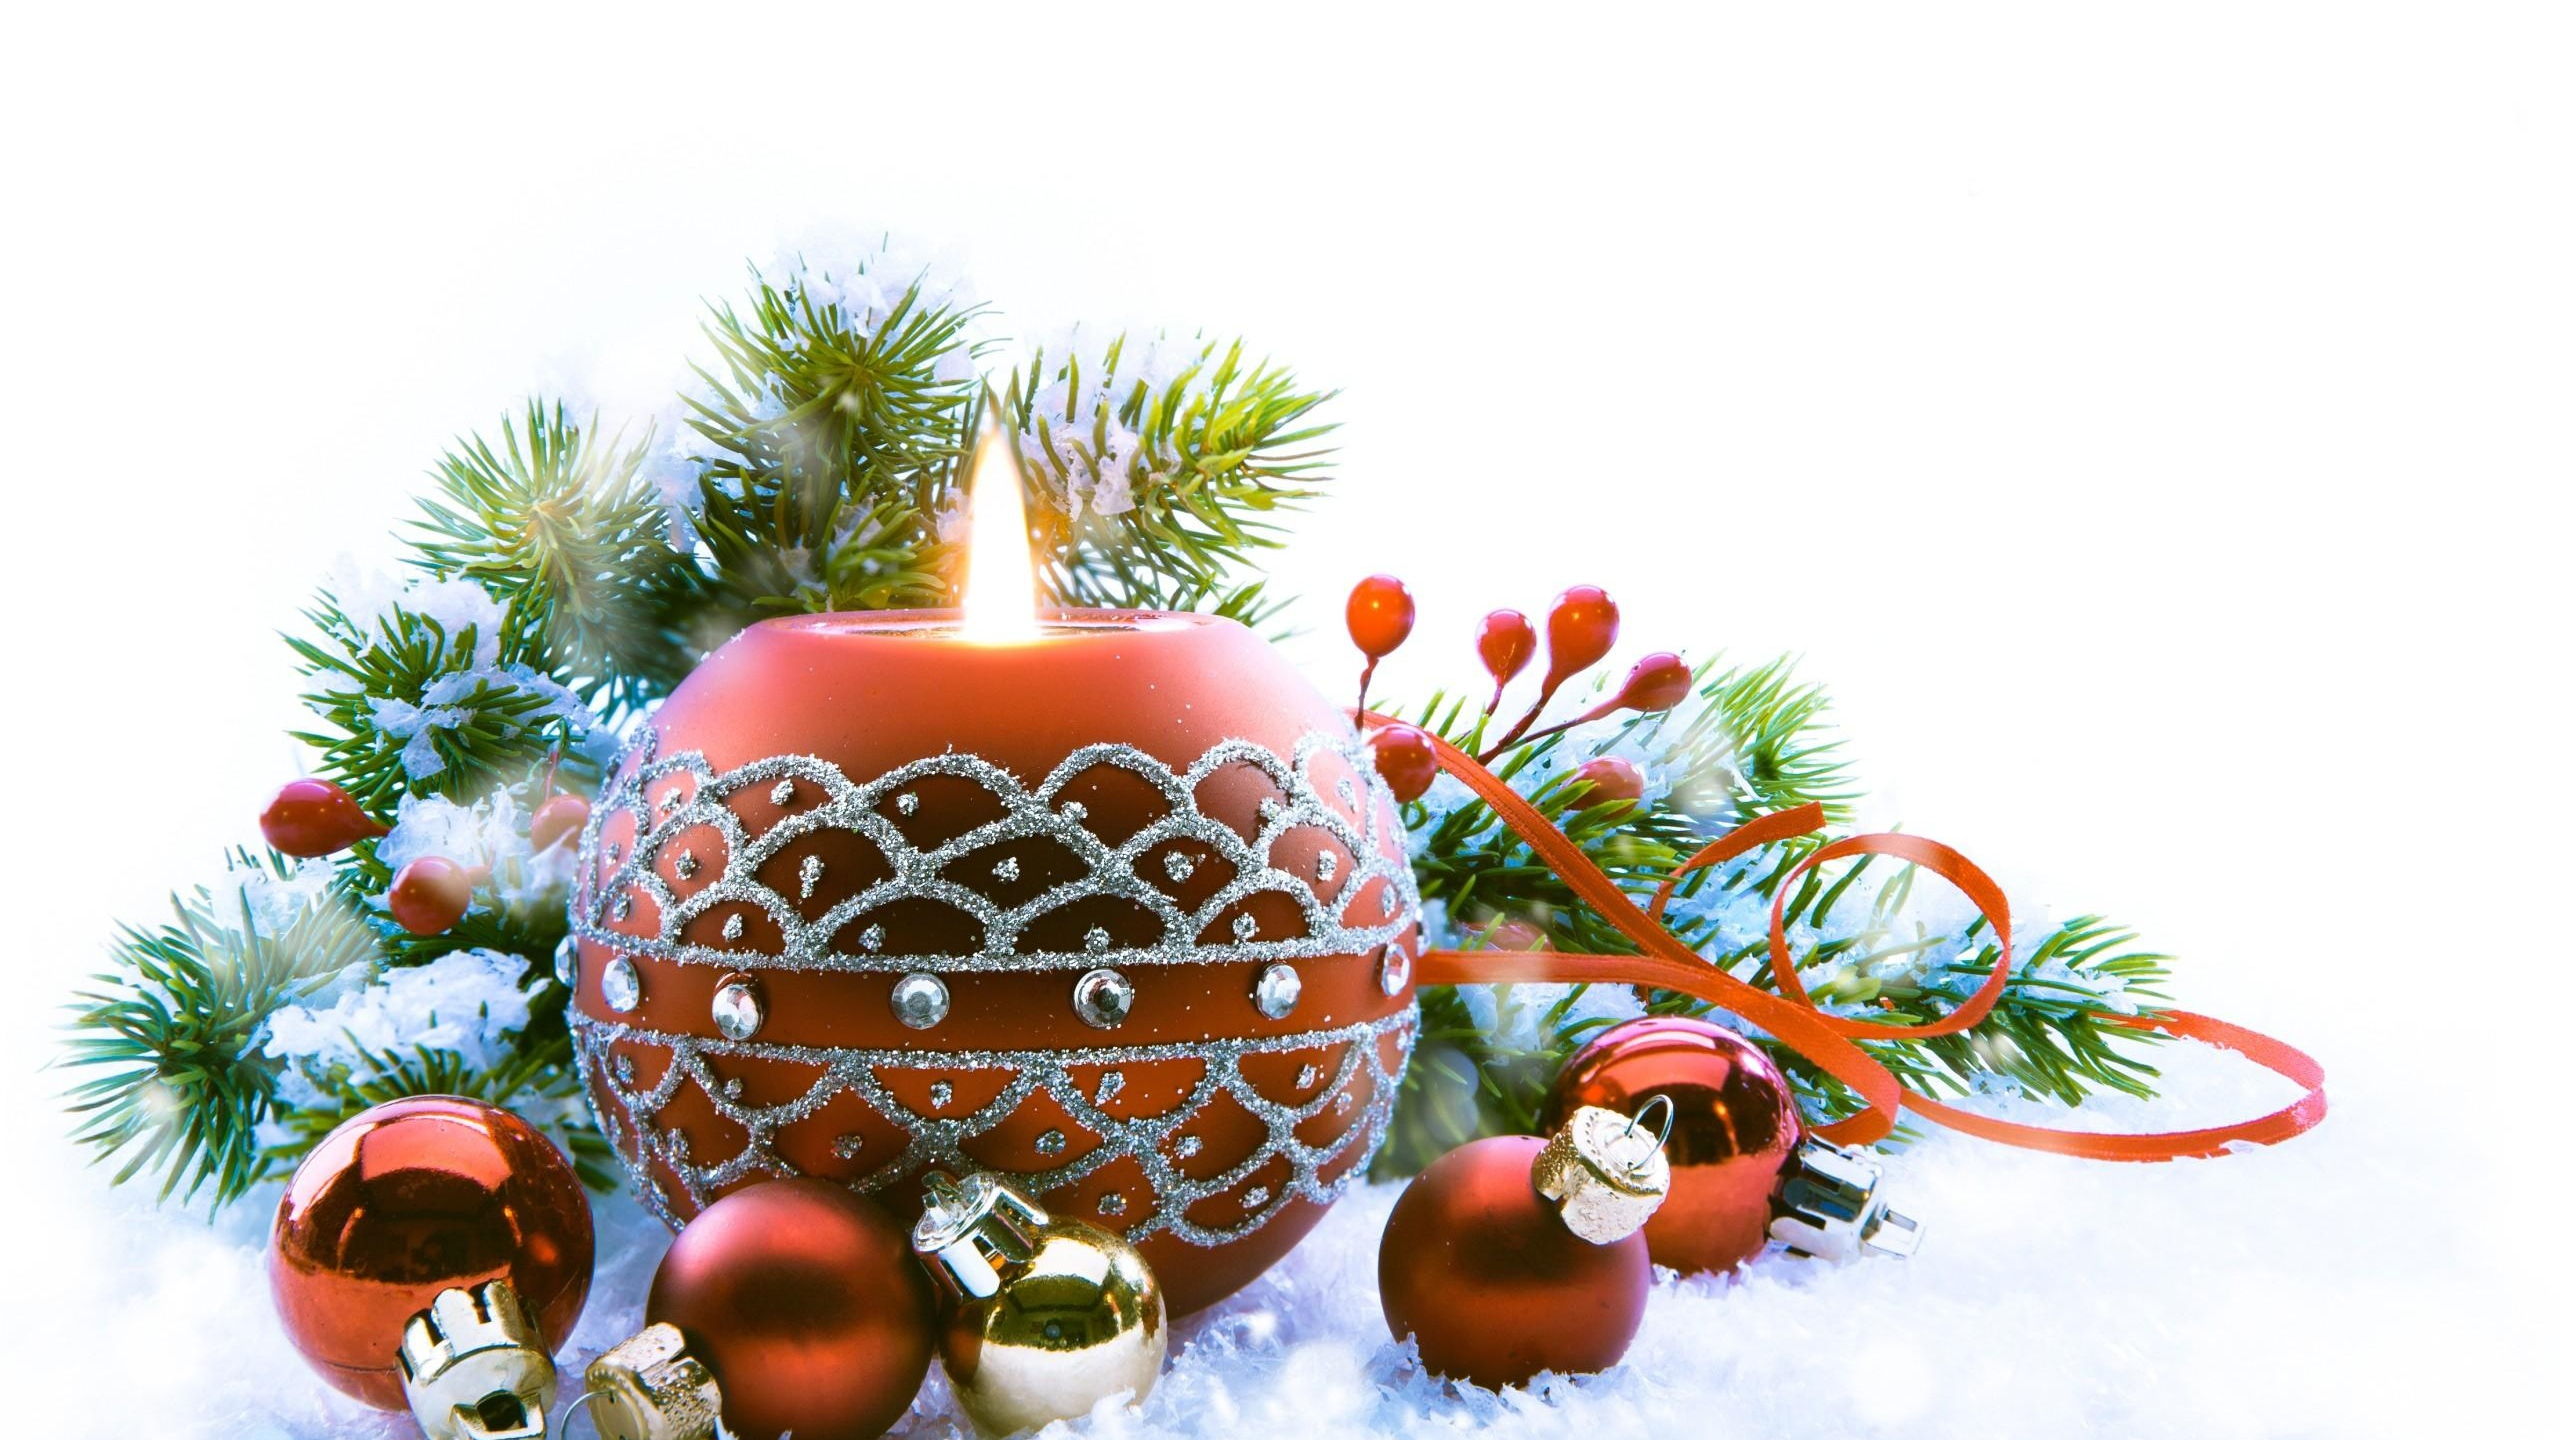 winter christmas candles decorations holiday new year